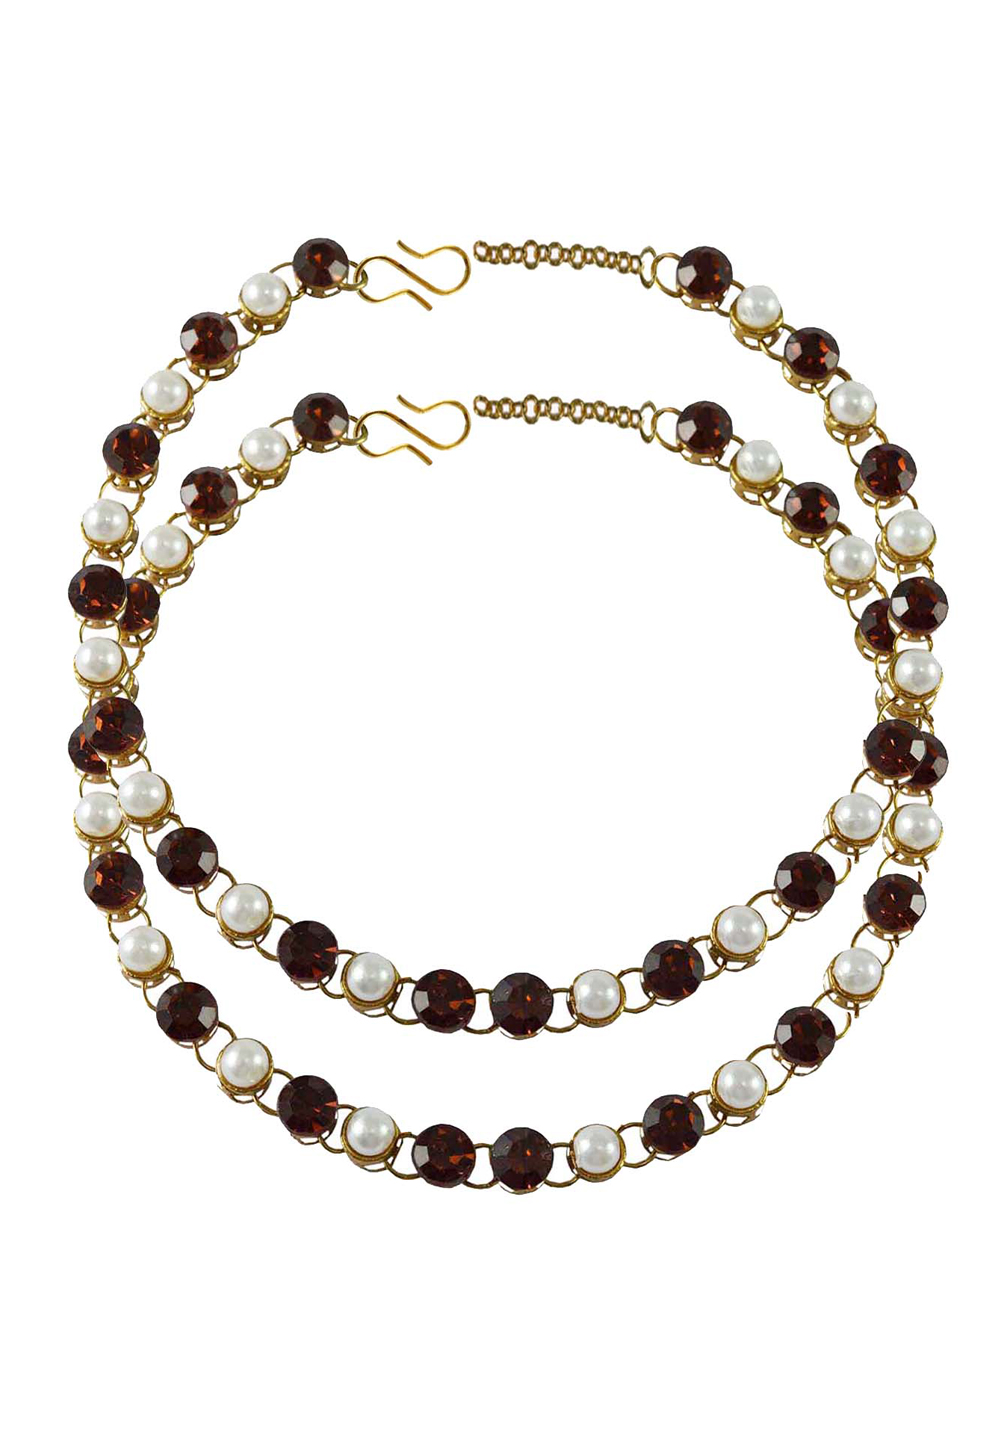 Maroon Brass Gold Plated Anklets 171278